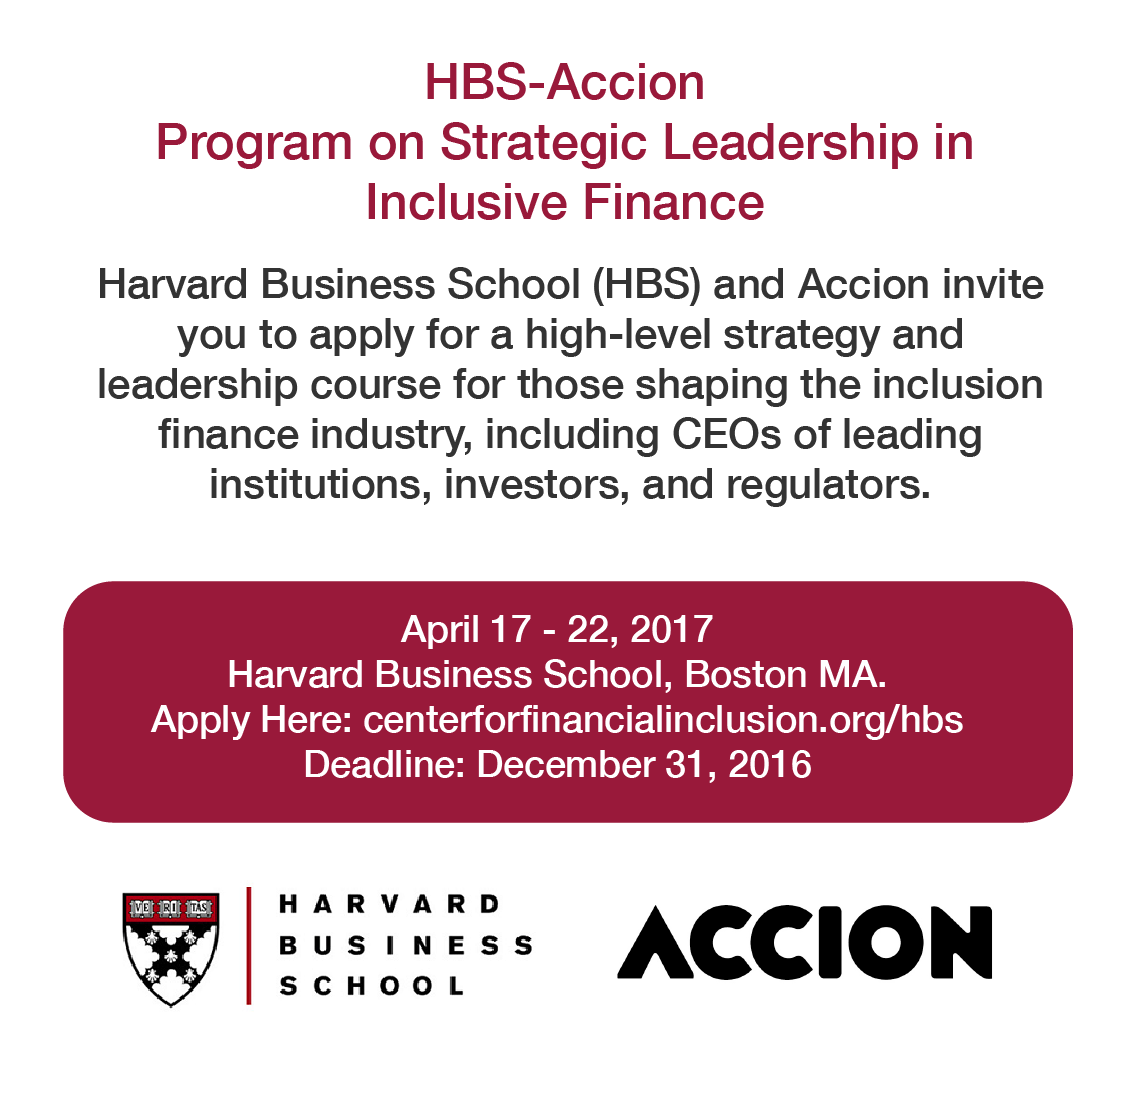 HBS-Accion Program on Strategic Leadership in Inclusive Finance